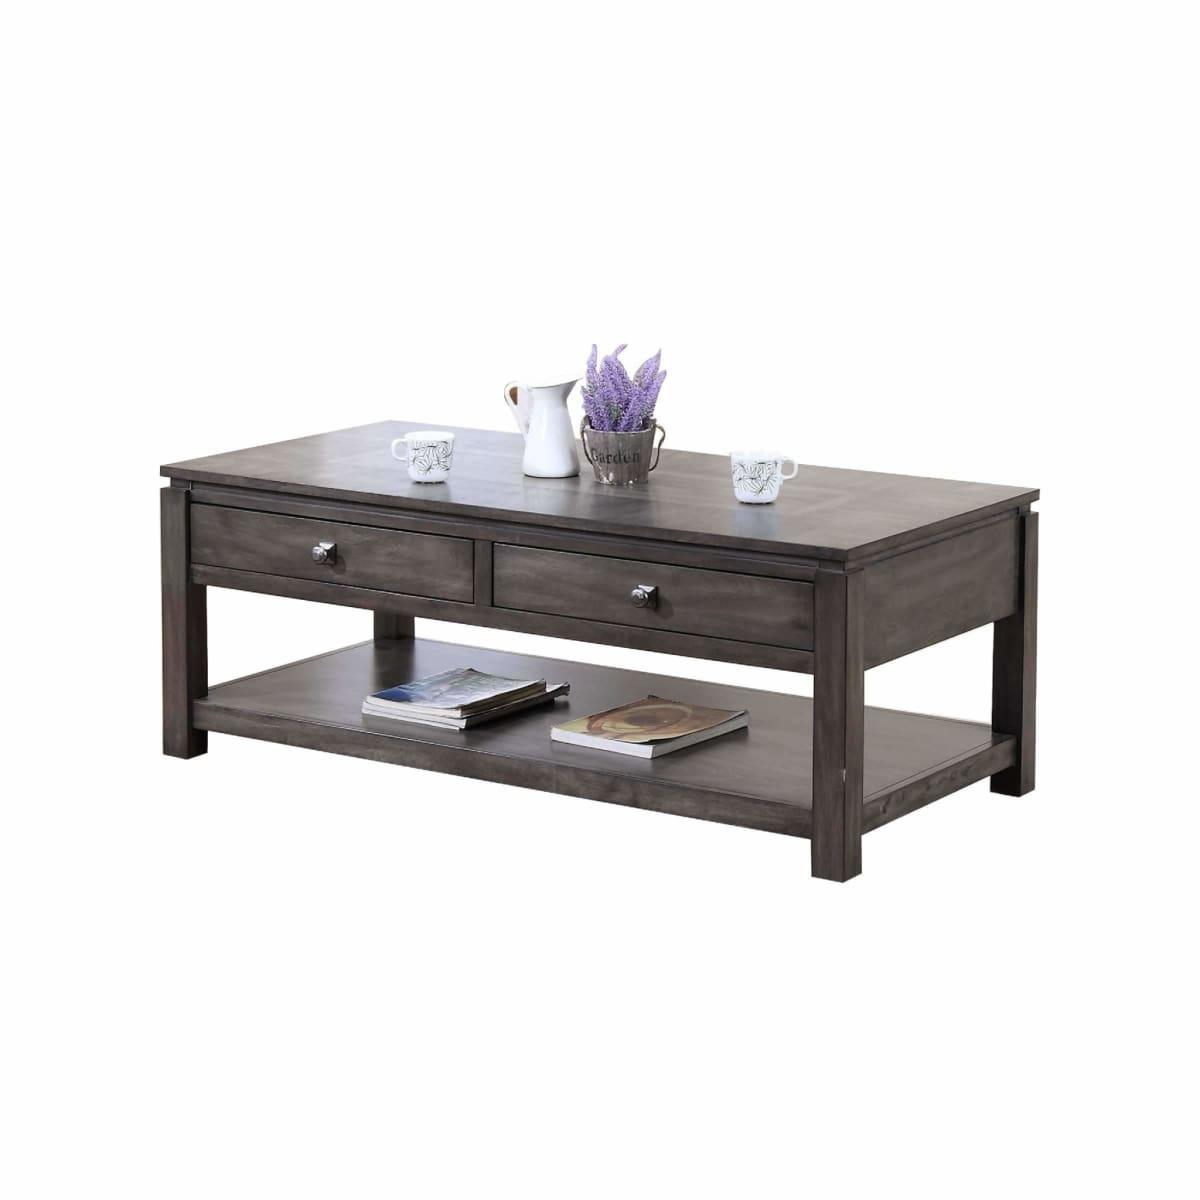 Lancaster 50 Rectangular Coffee Table - COFFEE TABLE